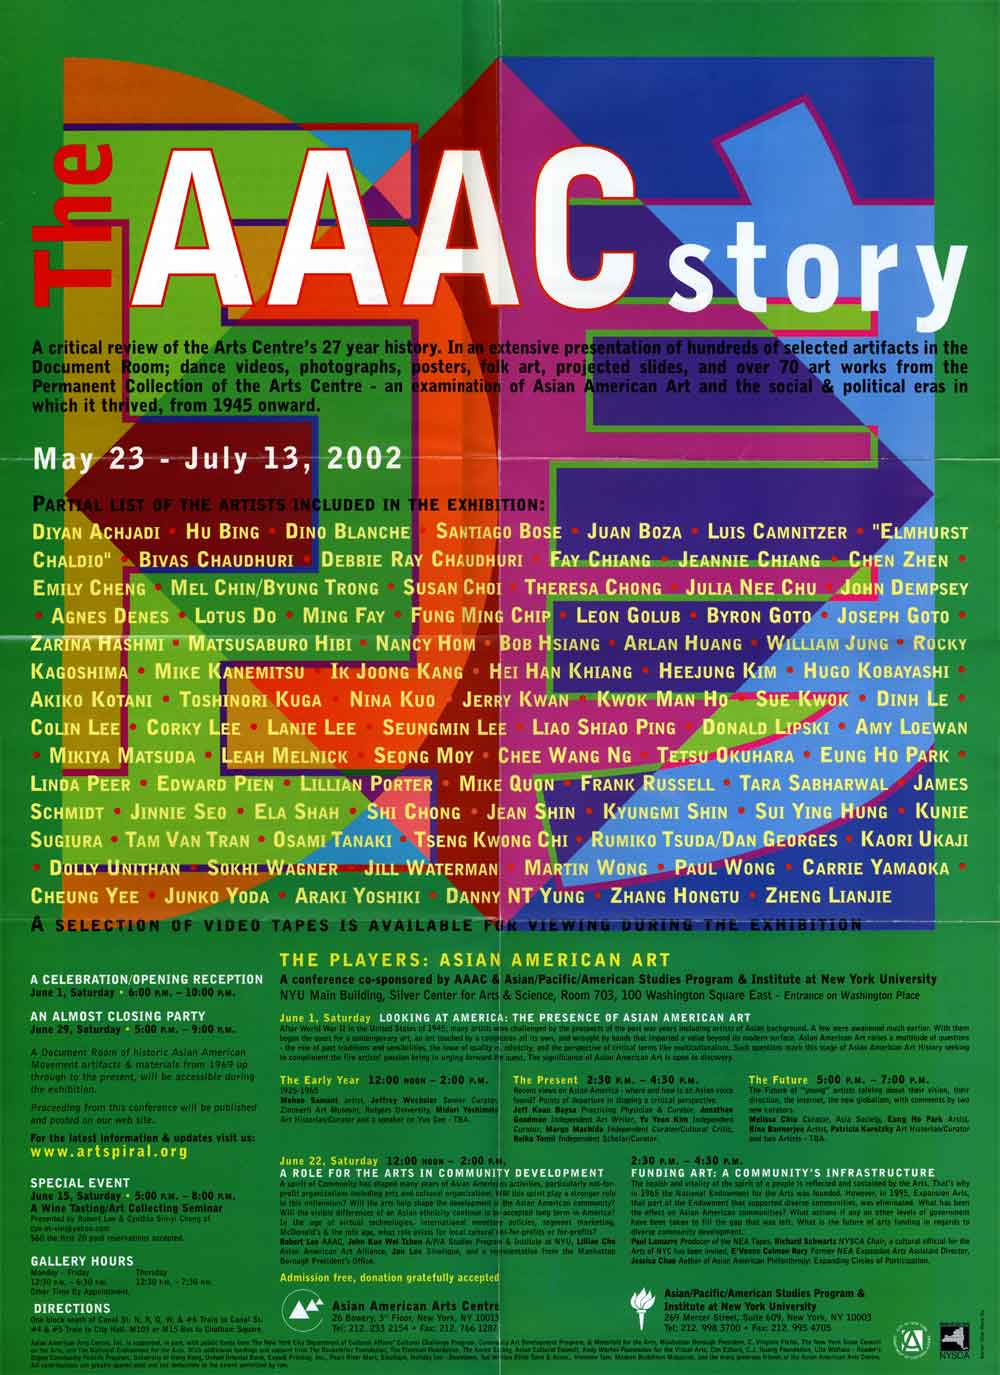 The AAAC Story, poster